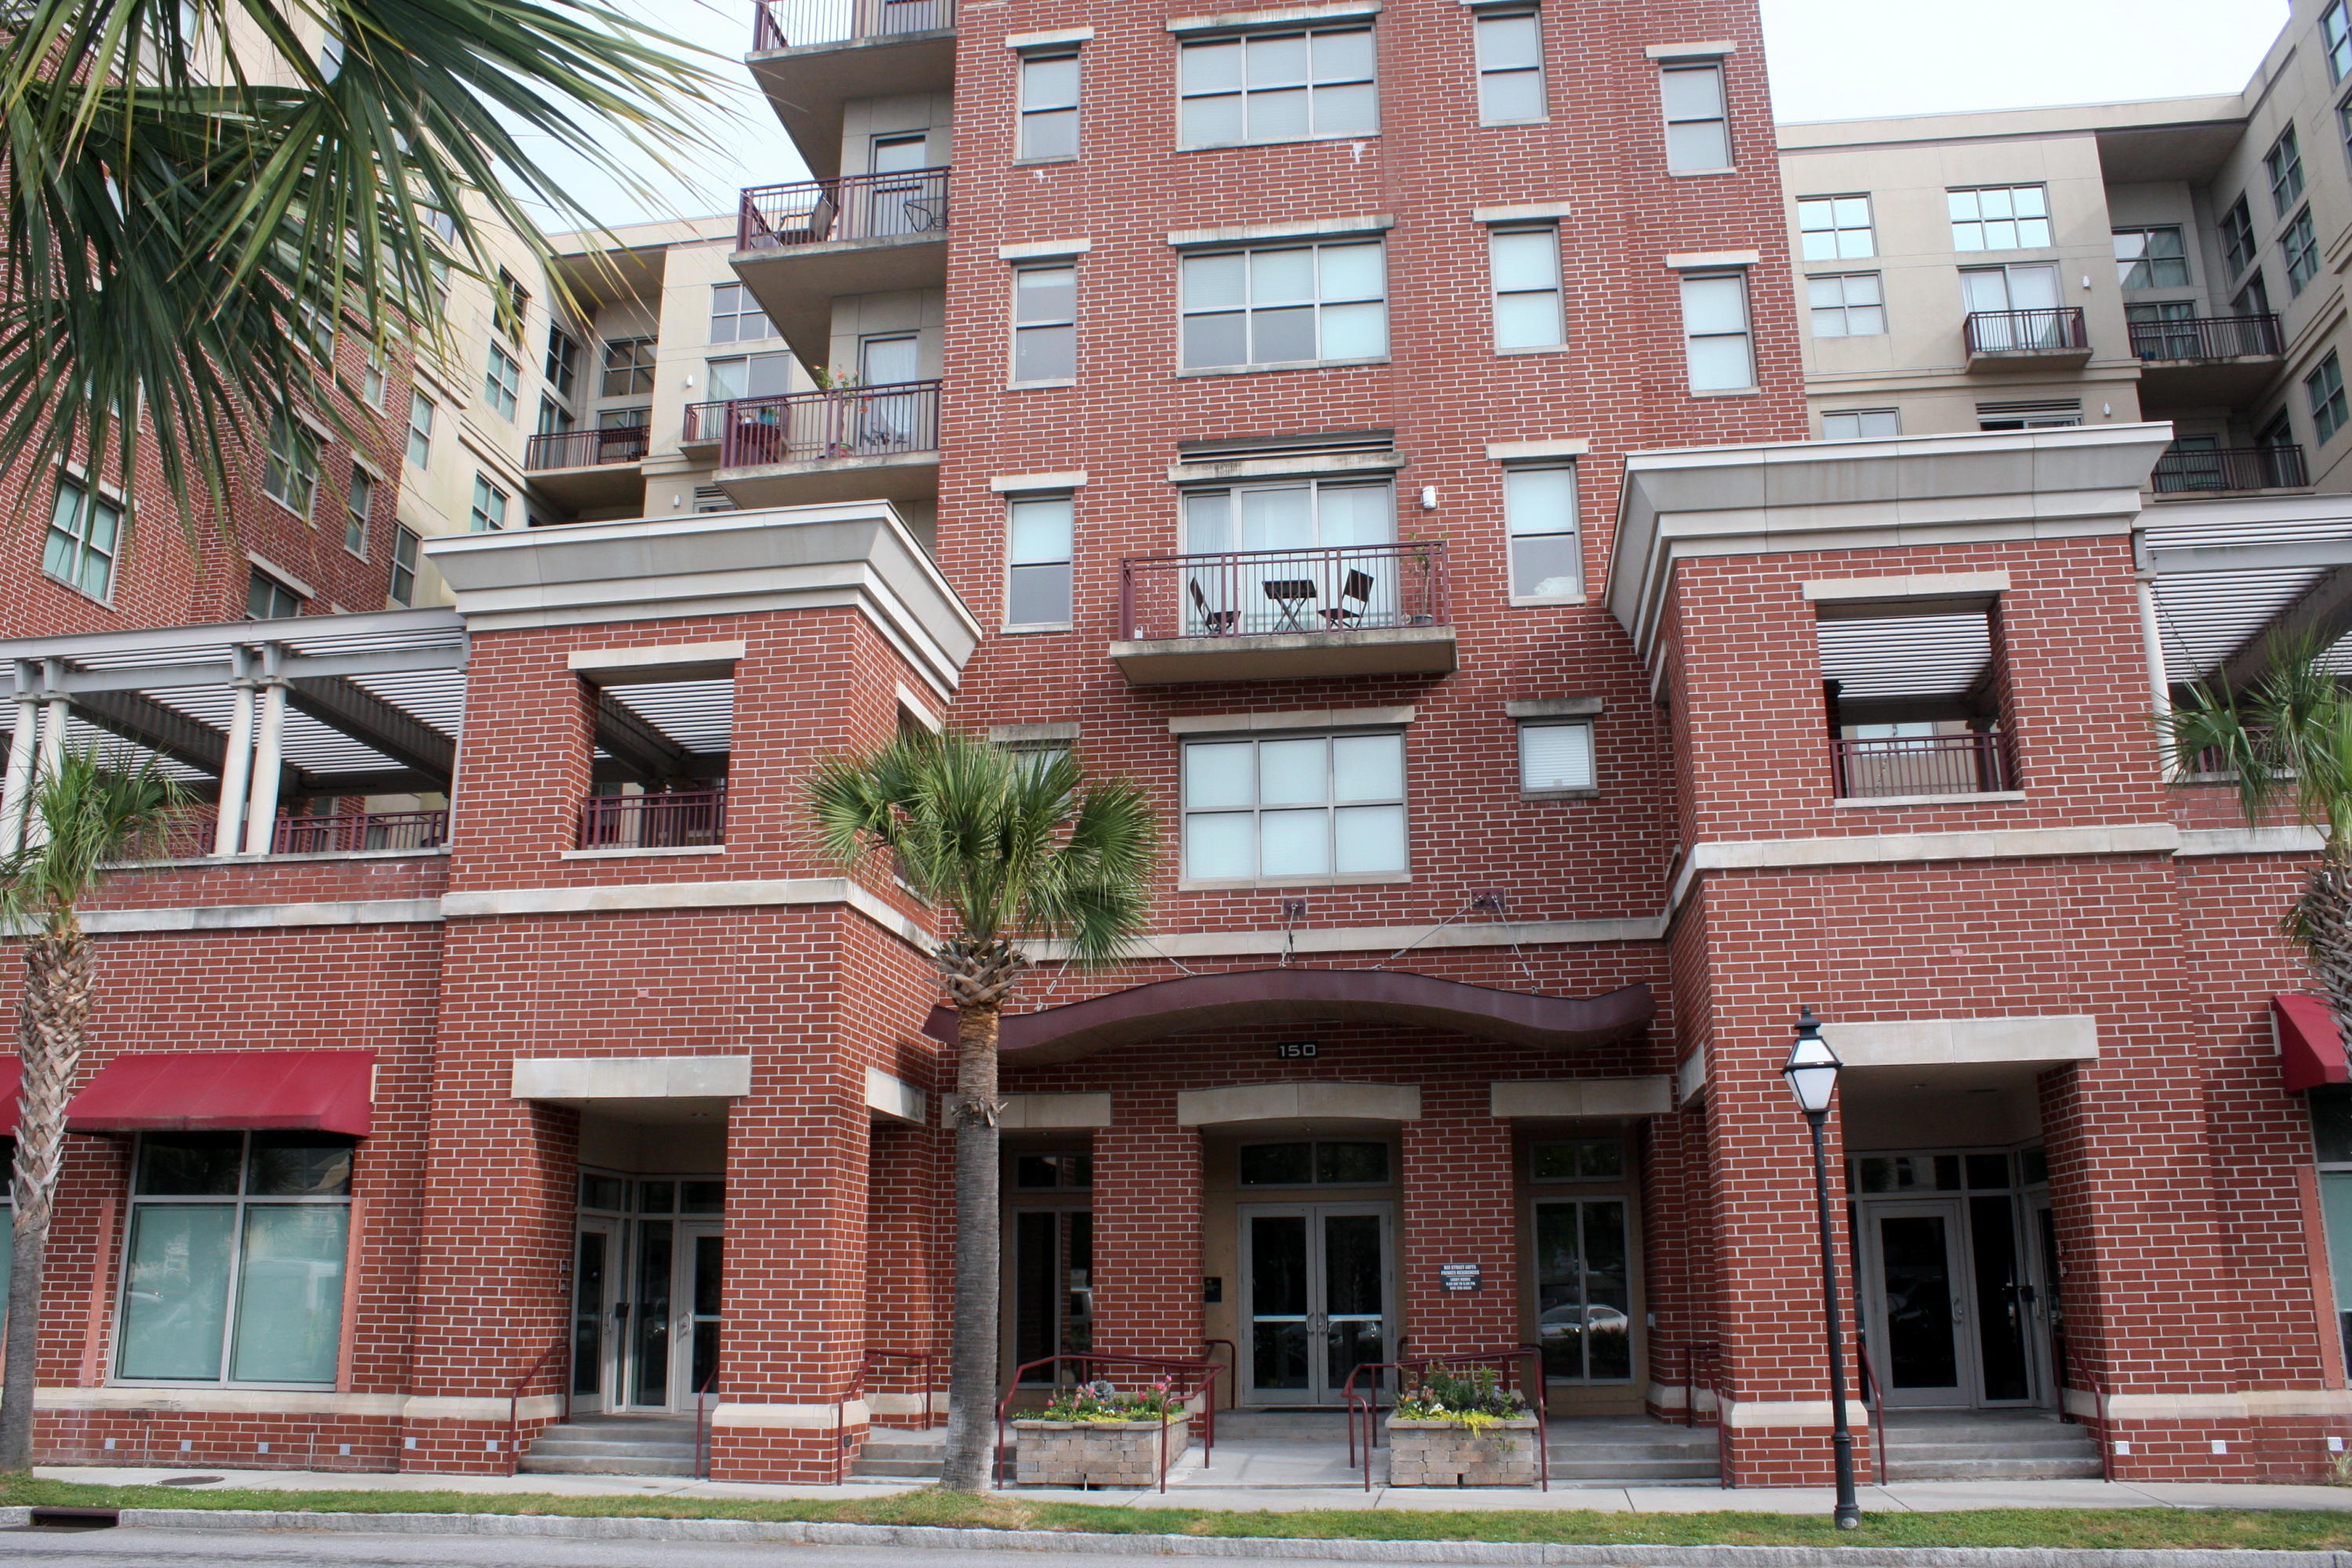 Bee Street Lofts Homes For Sale - 150 Bee, Charleston, SC - 7